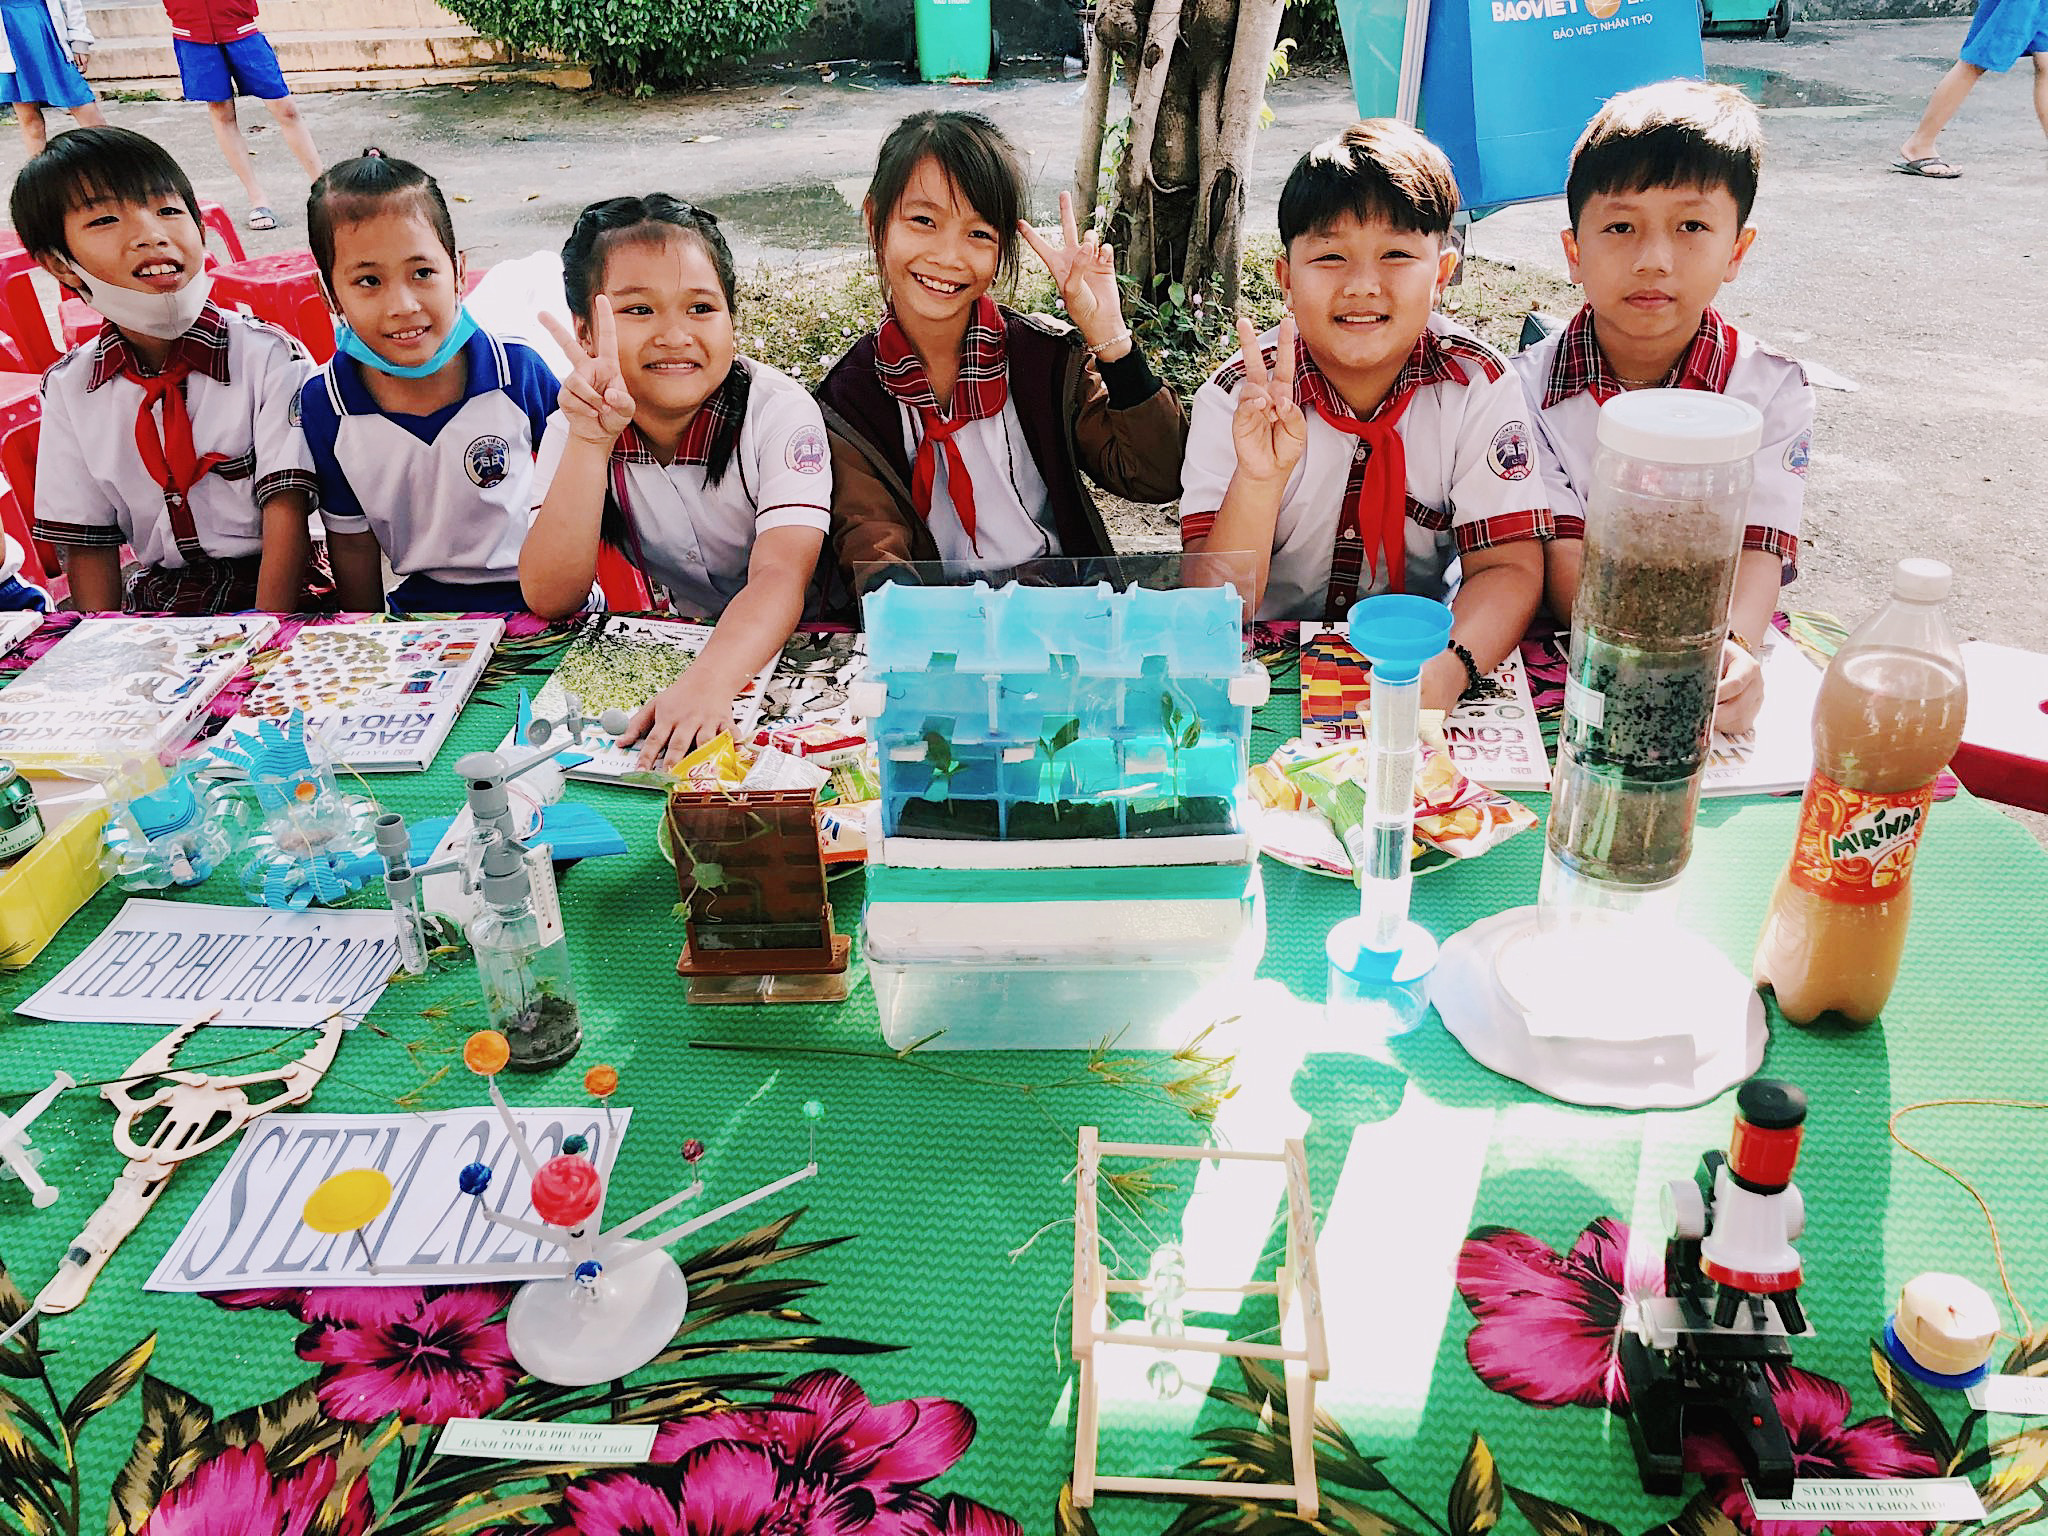 A youth-led science community to enable Ho Chi Minh City to move forward on a global scale